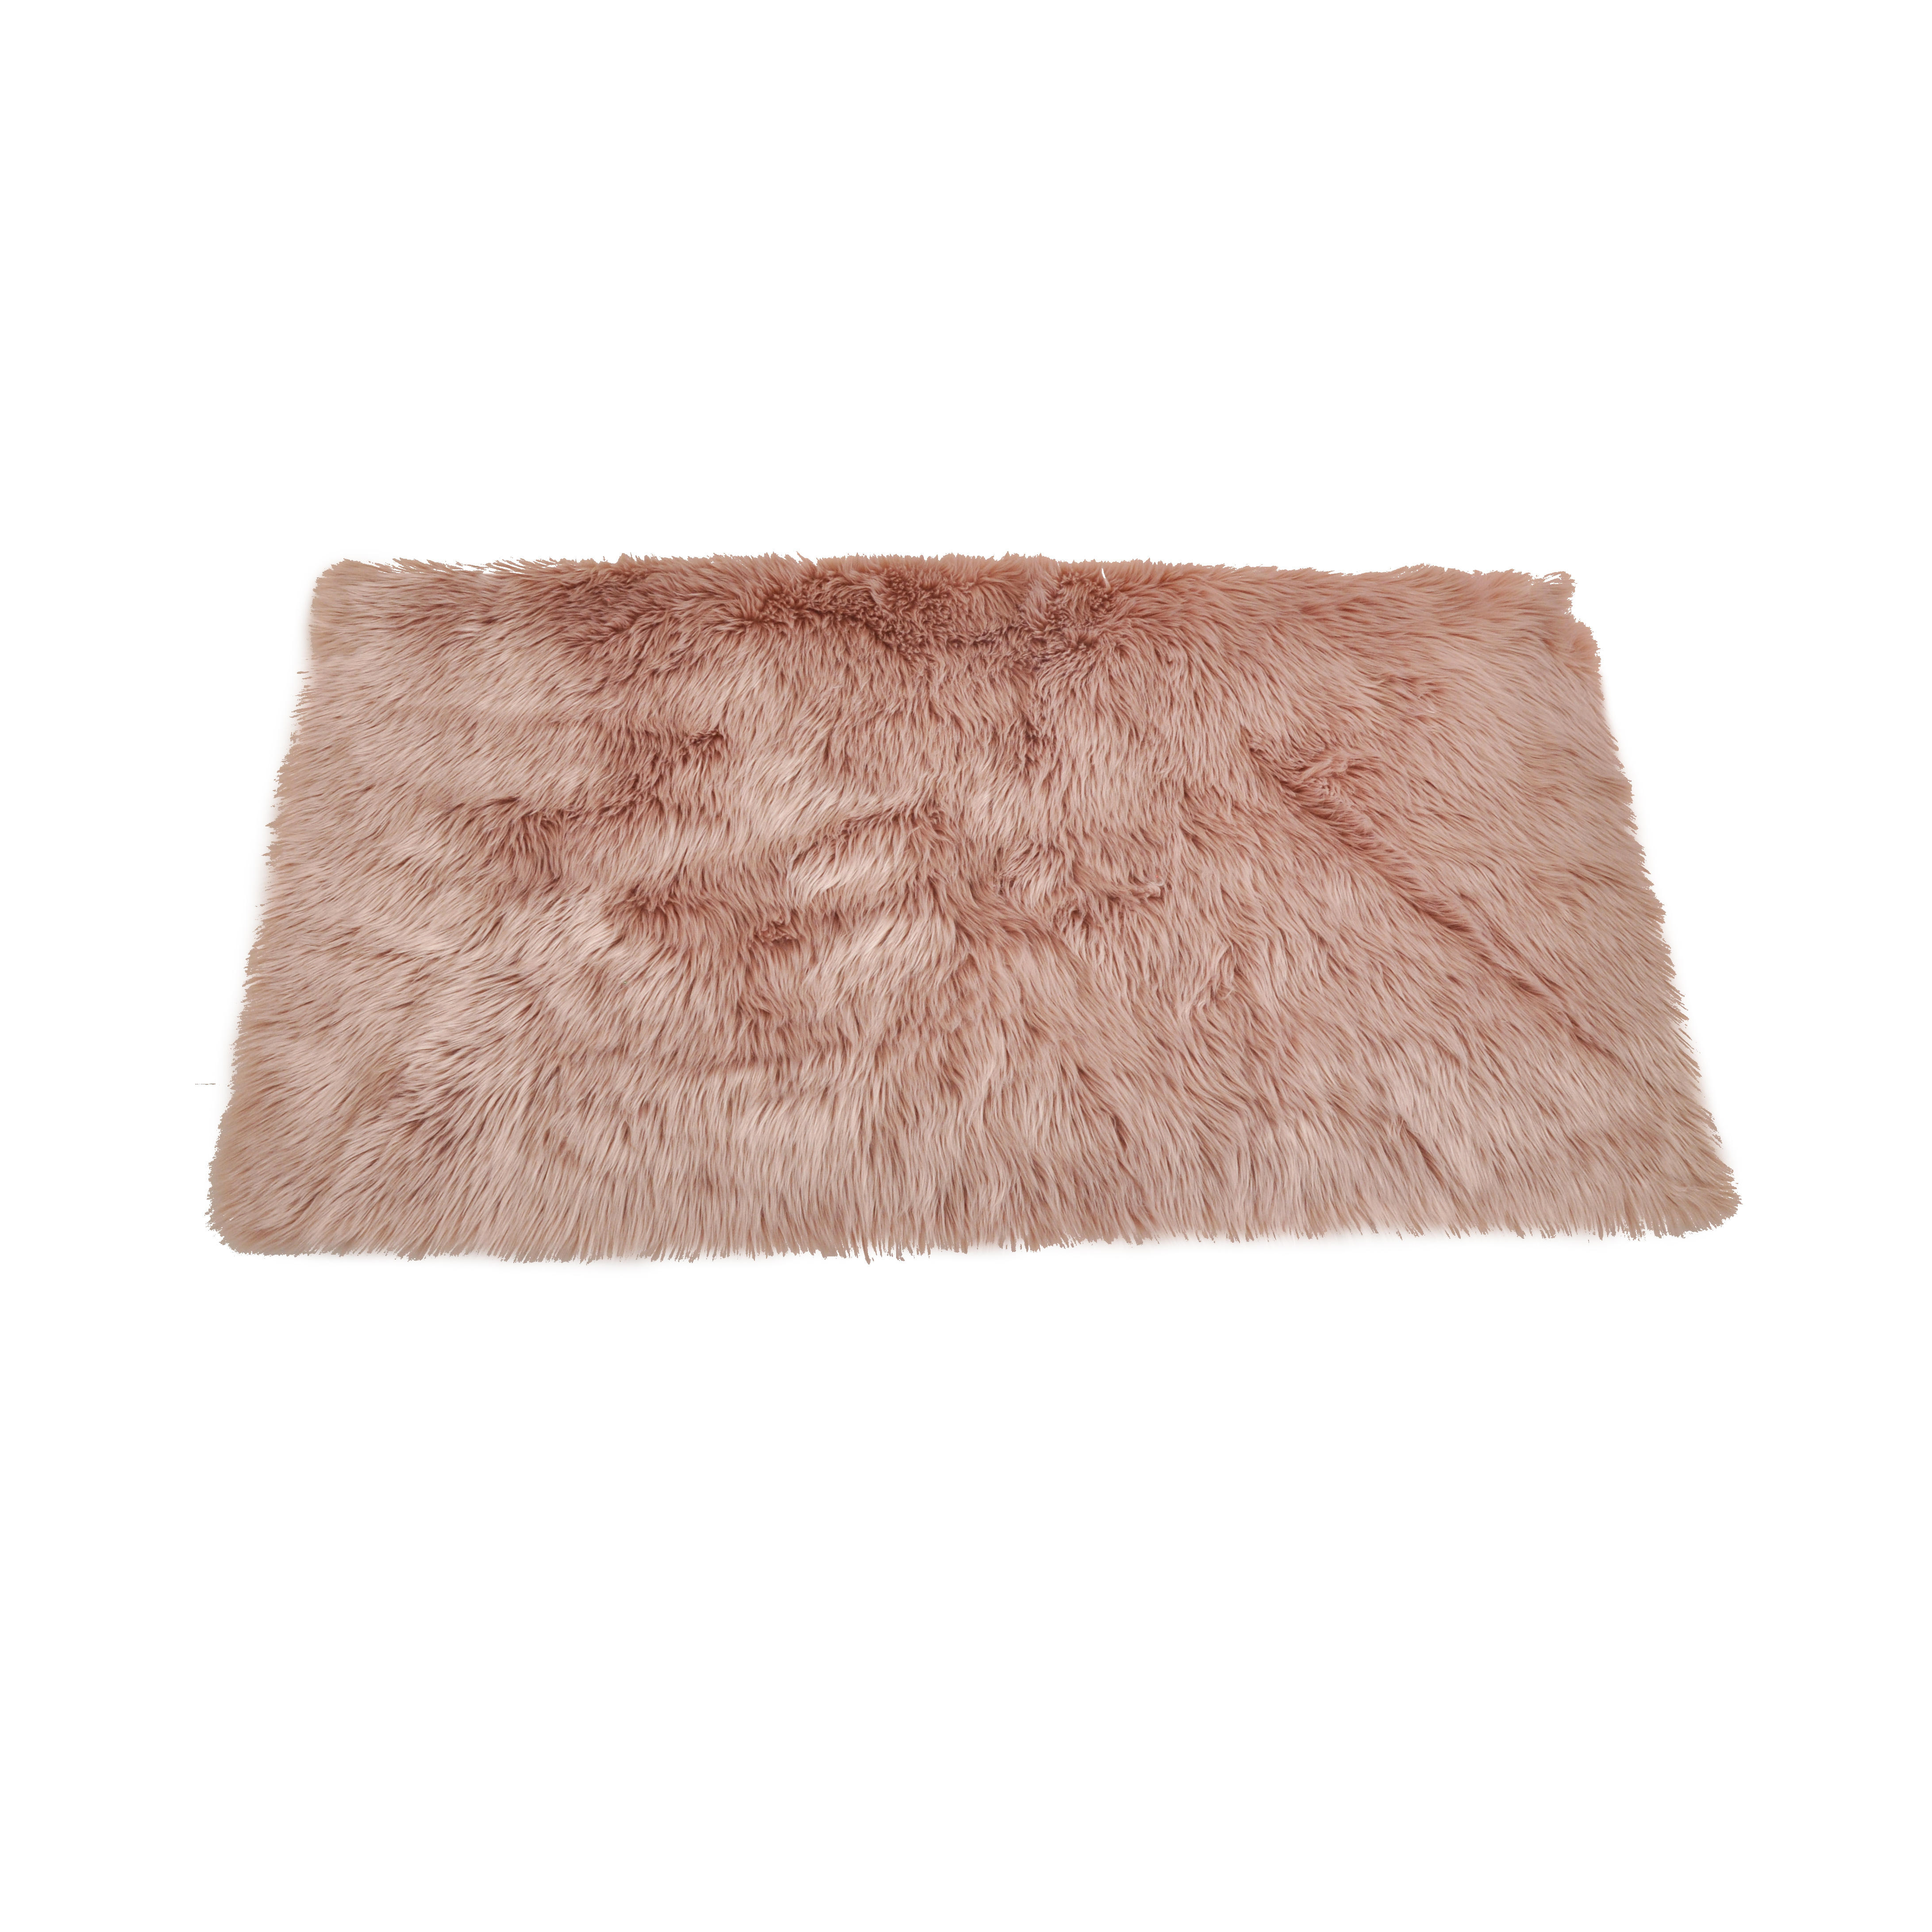 2020 hot sale long pile shaggy faux sheepskin carpet